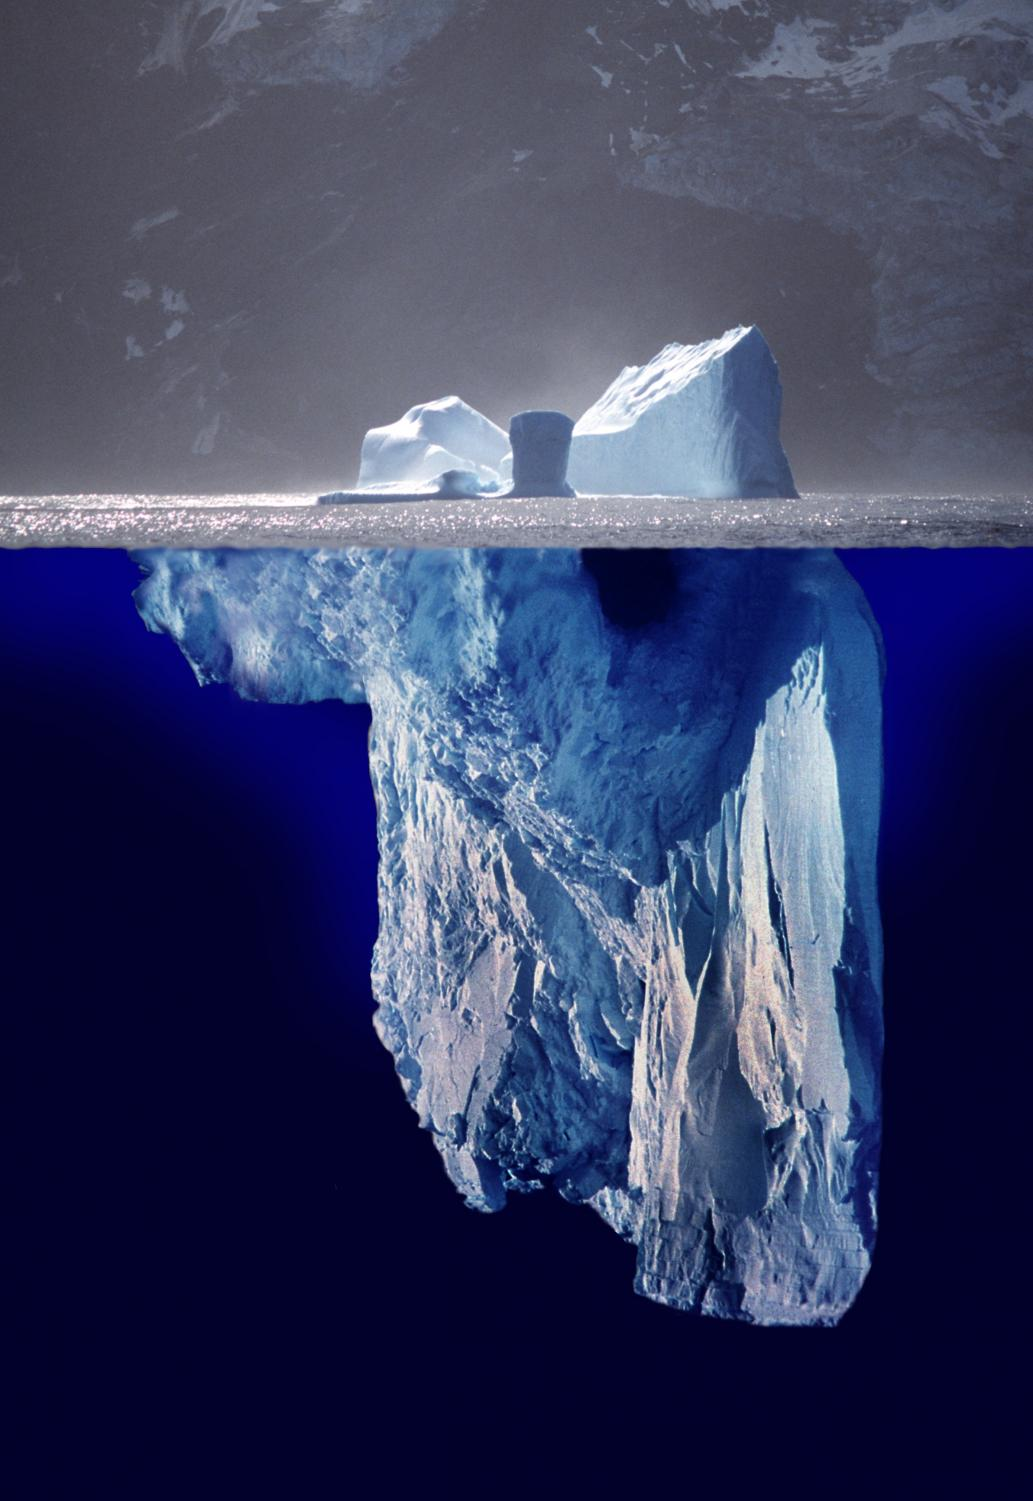 The tip of an iceberg is a small, unrepresentative portion of something much larger or deeper that can't be seen or understood.